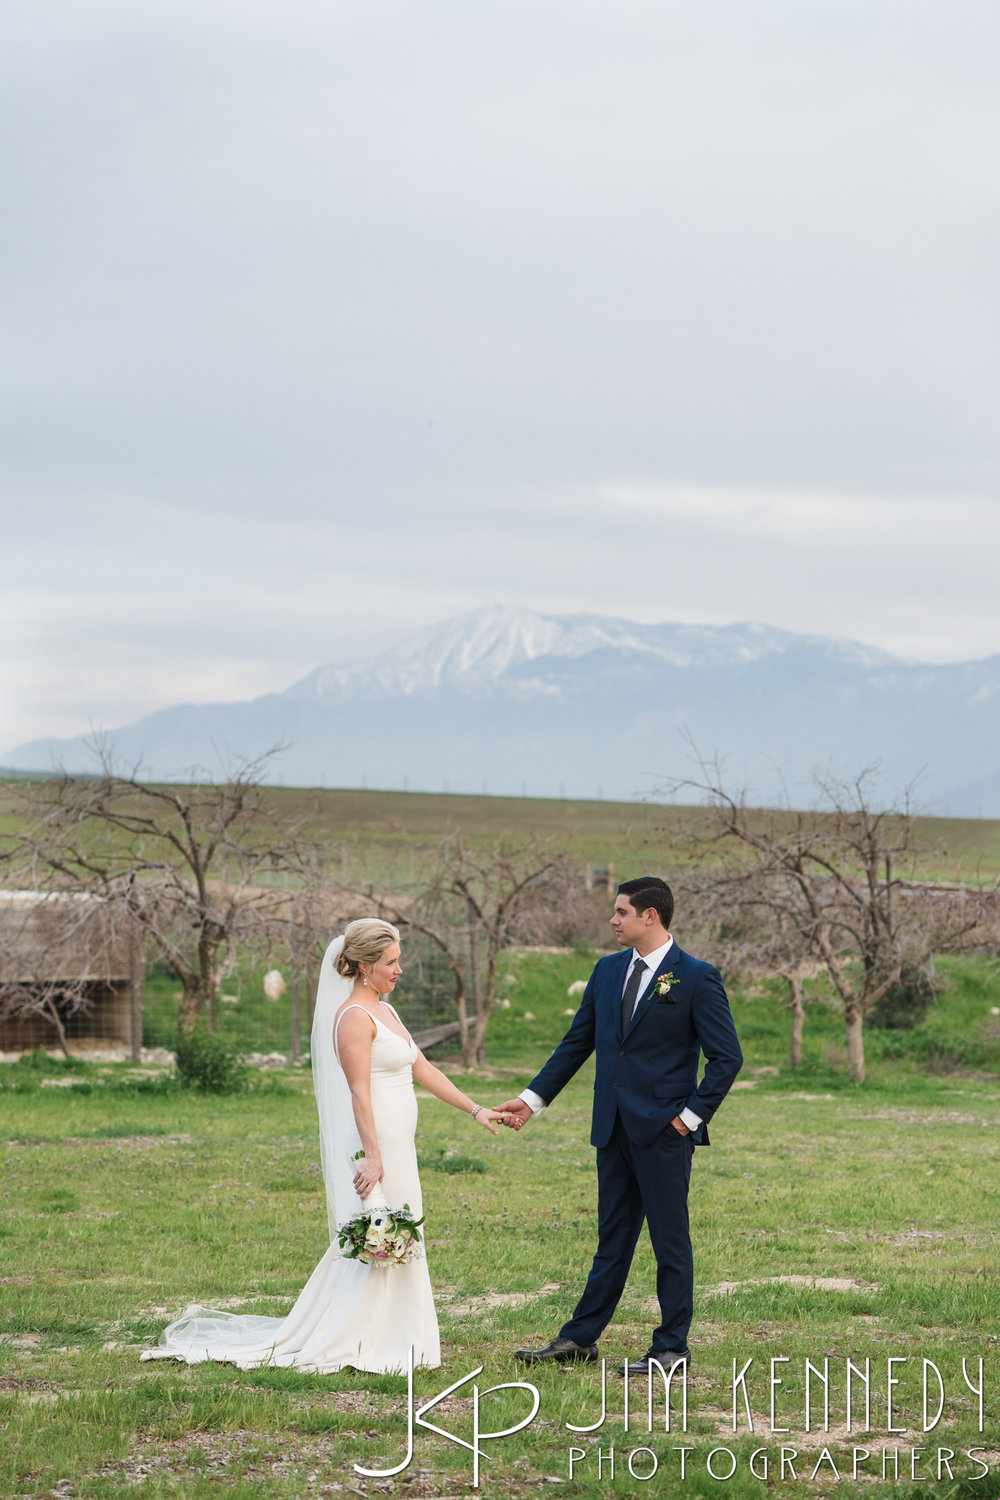 jim_kennedy_photographers_highland_springs_wedding_caitlyn_0140.jpg